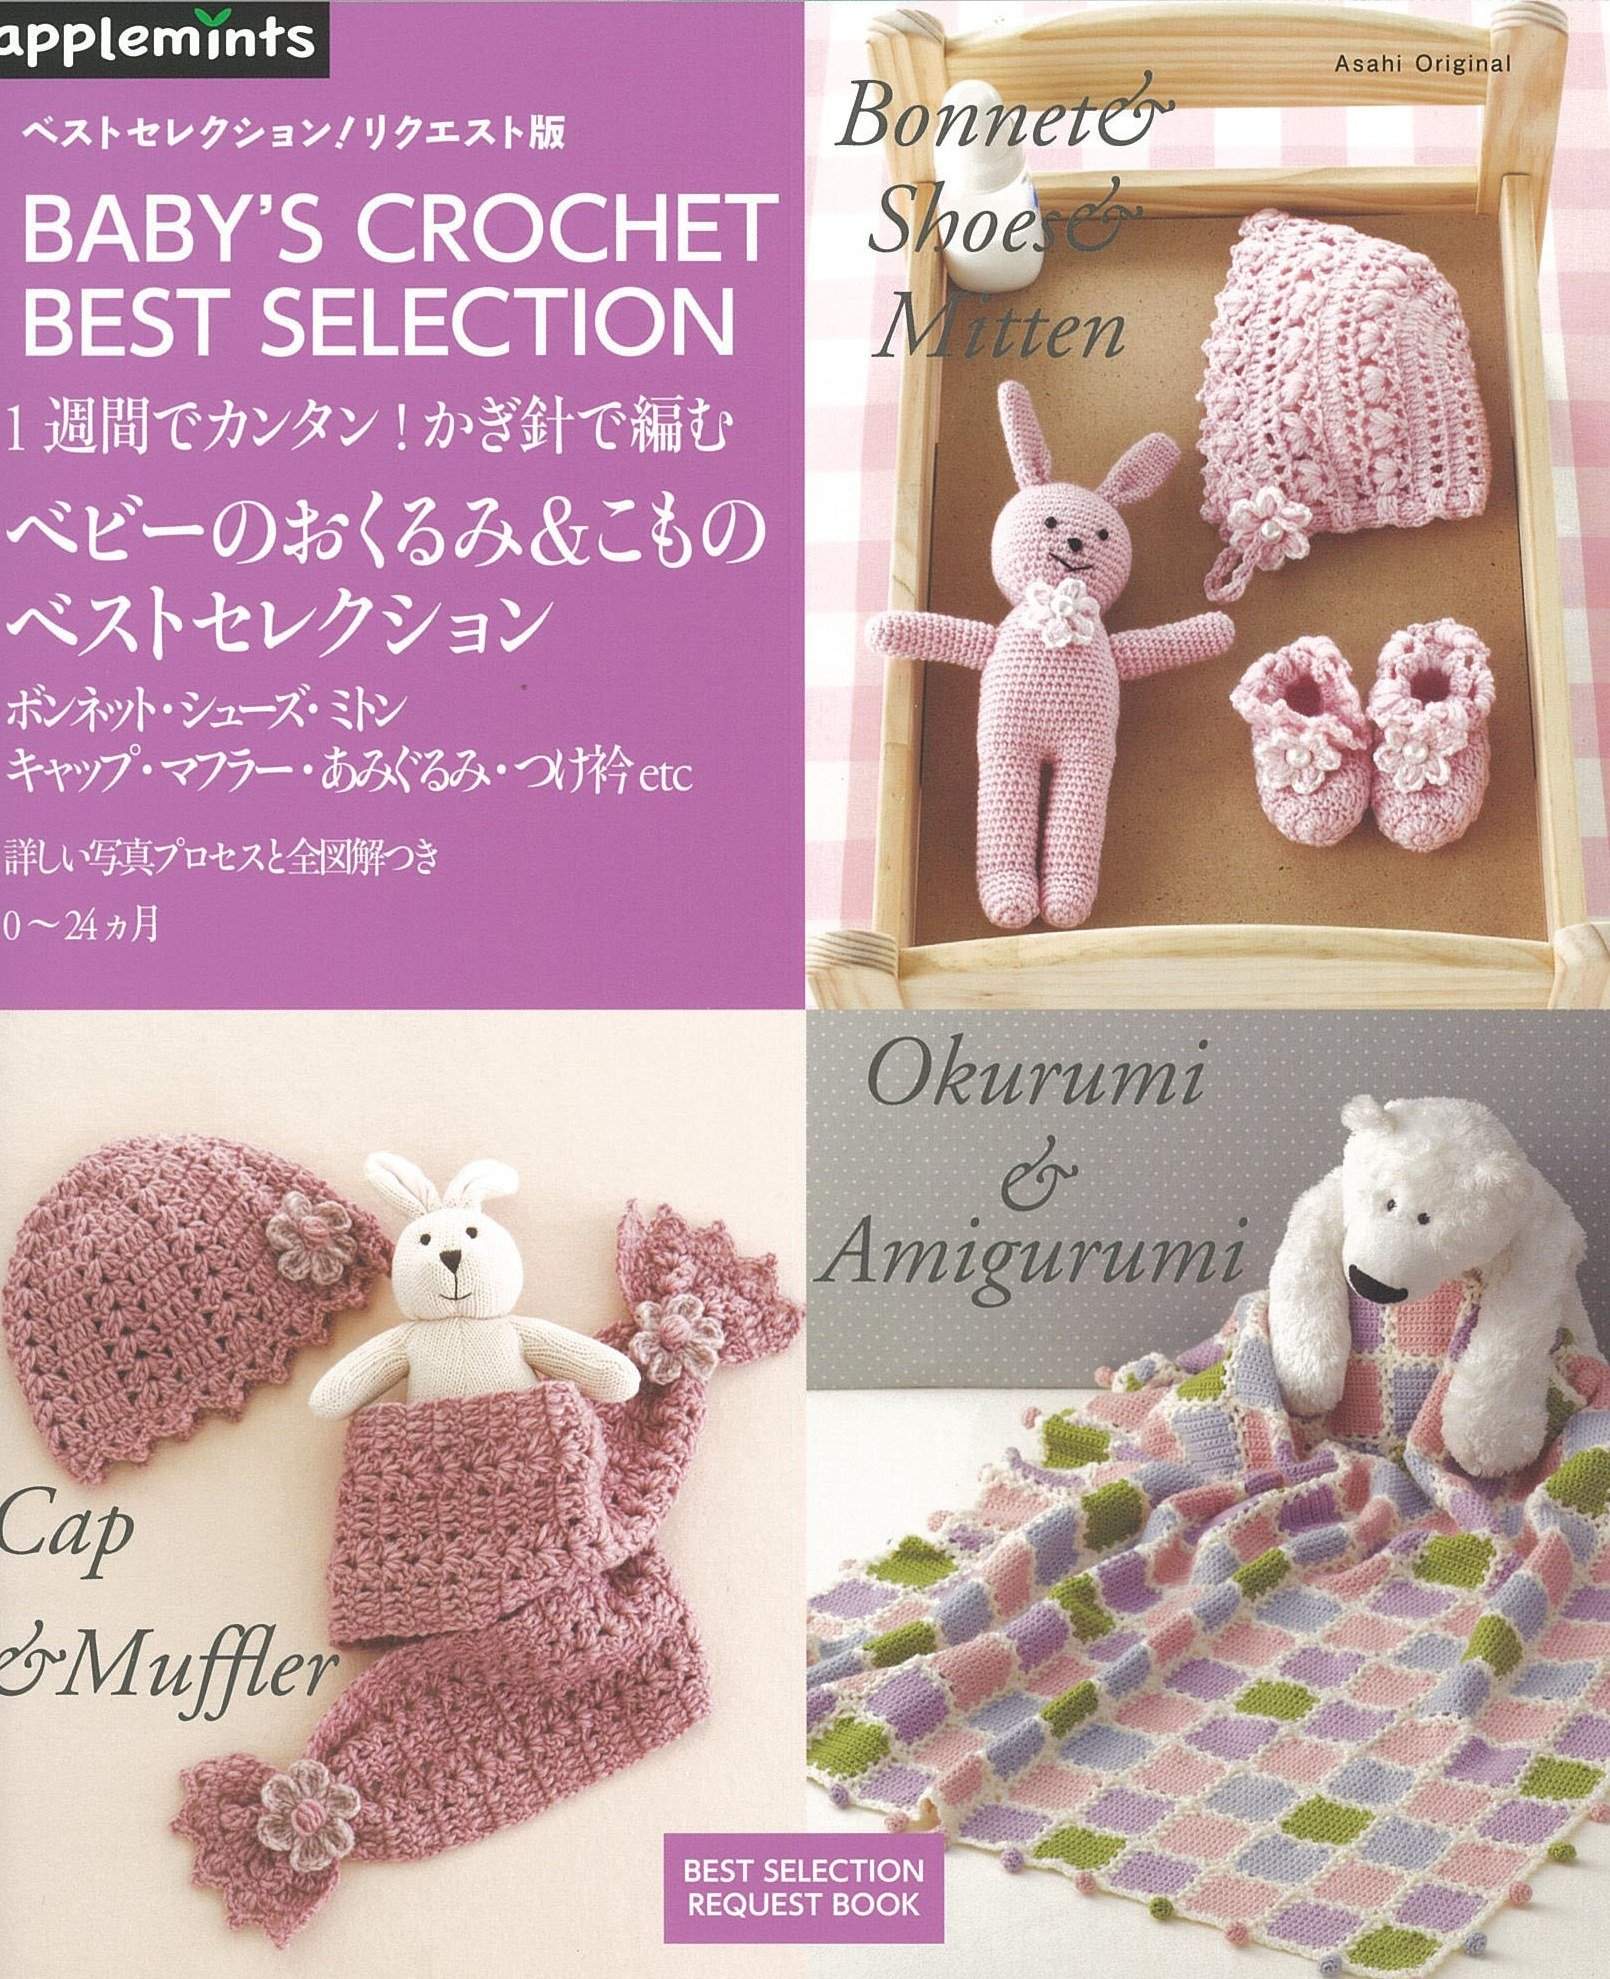 Best selection of baby crochet Swaddling & accessories